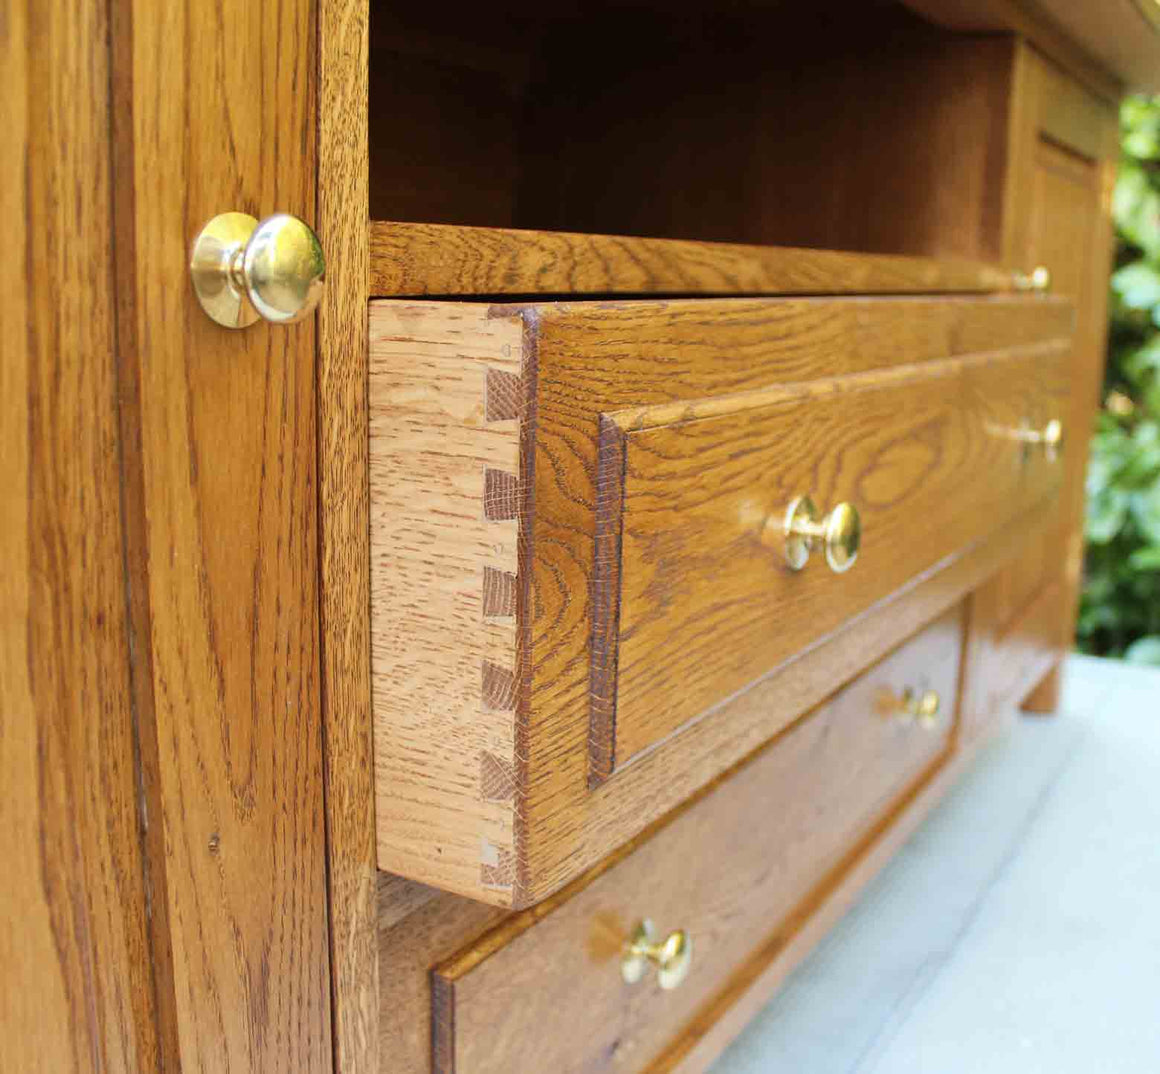 Brighton Handmade Bespoke Cabinet in Solid English Oak